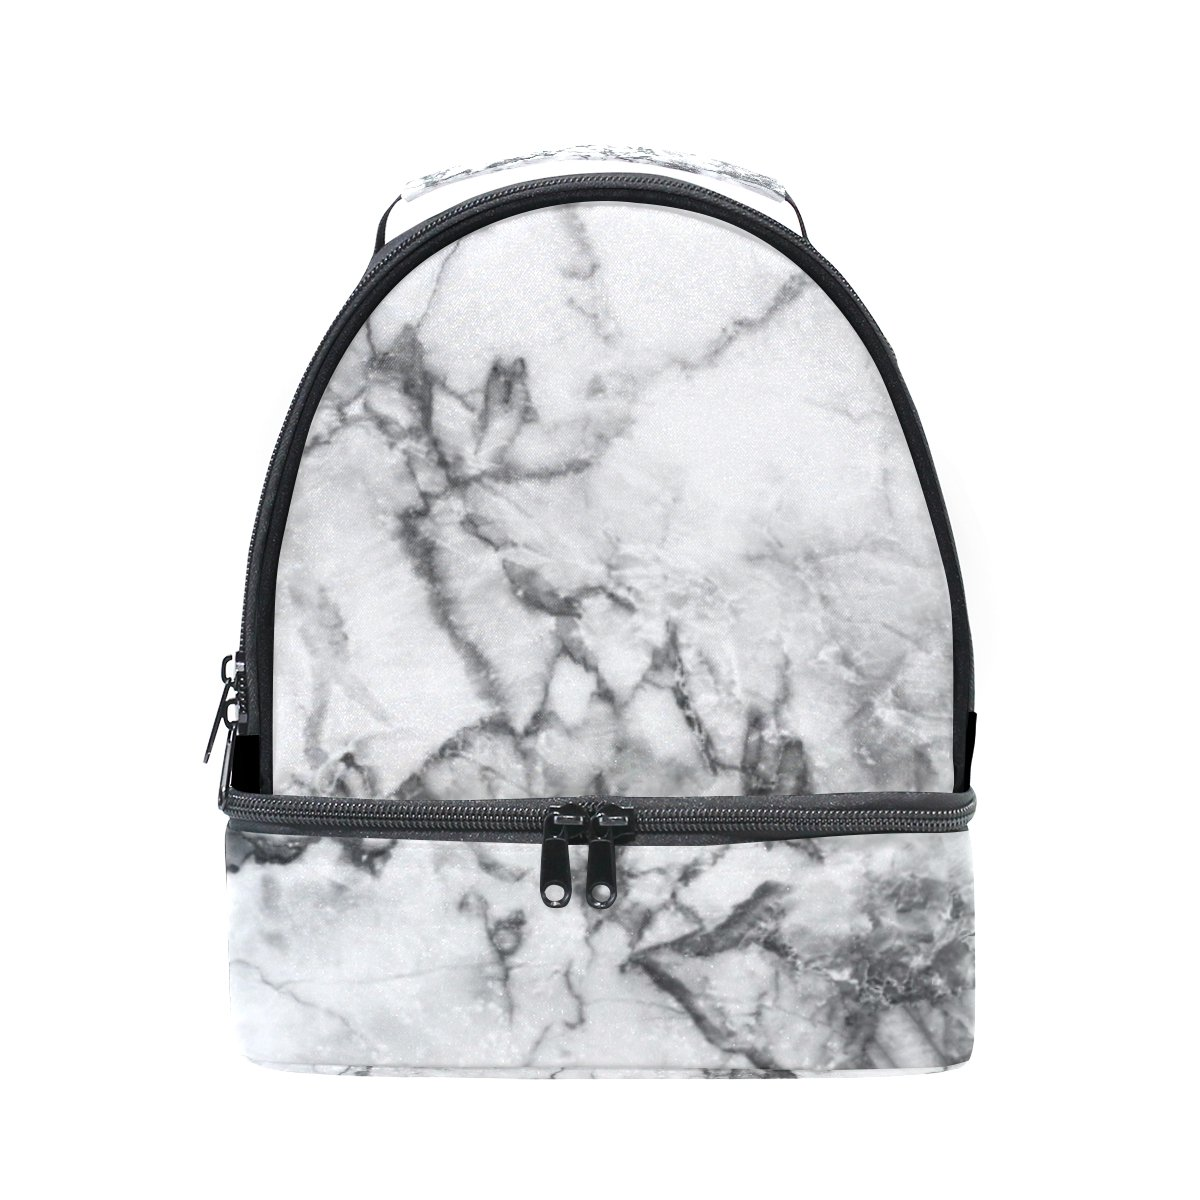 20e08656b87d Vantaso Insulated Lunch Box Bag White Grey Marble Texture for Women ...